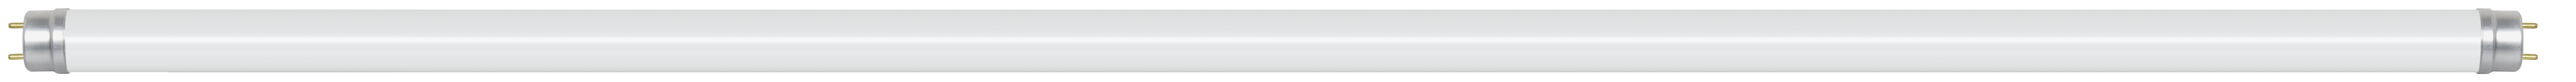 SupValue T8 LED Glass Tube (230° Beam Angle)